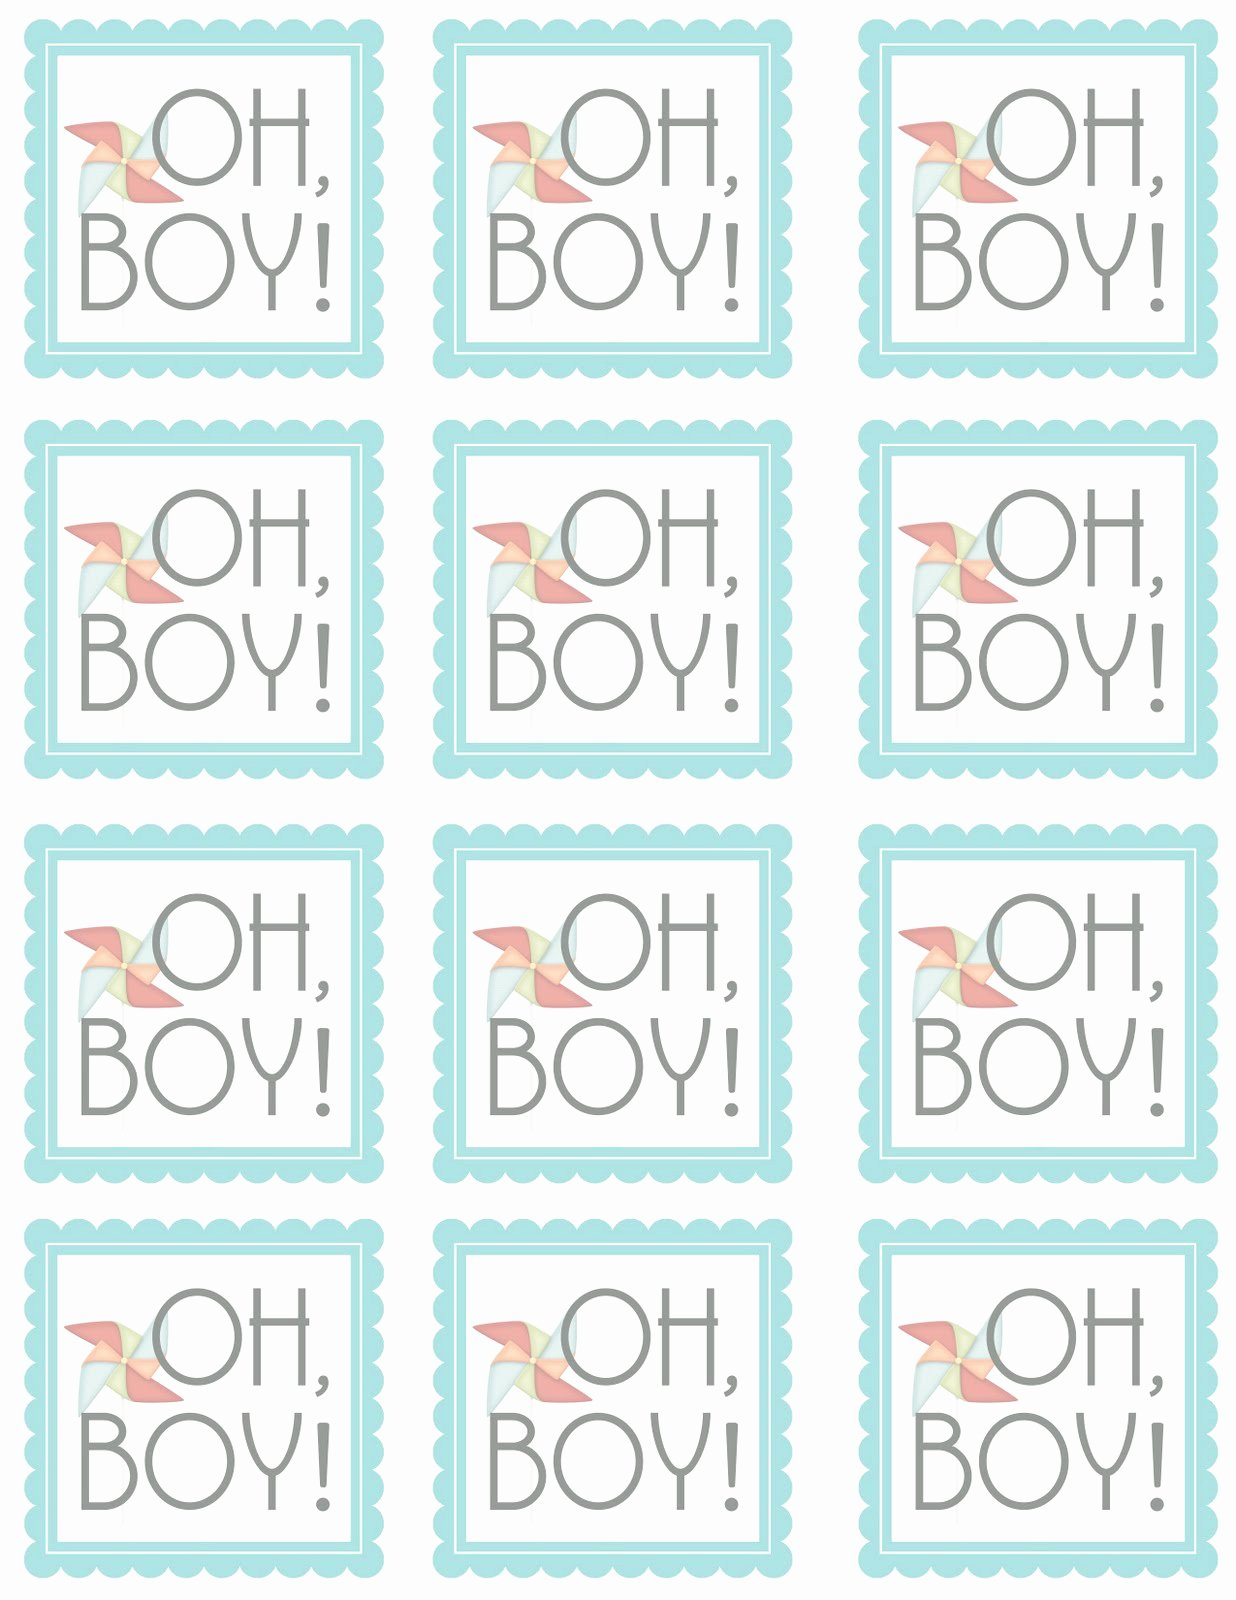 Printable Baby Shower Tags Awesome Sugartotdesigns Oh Boy Free Printable